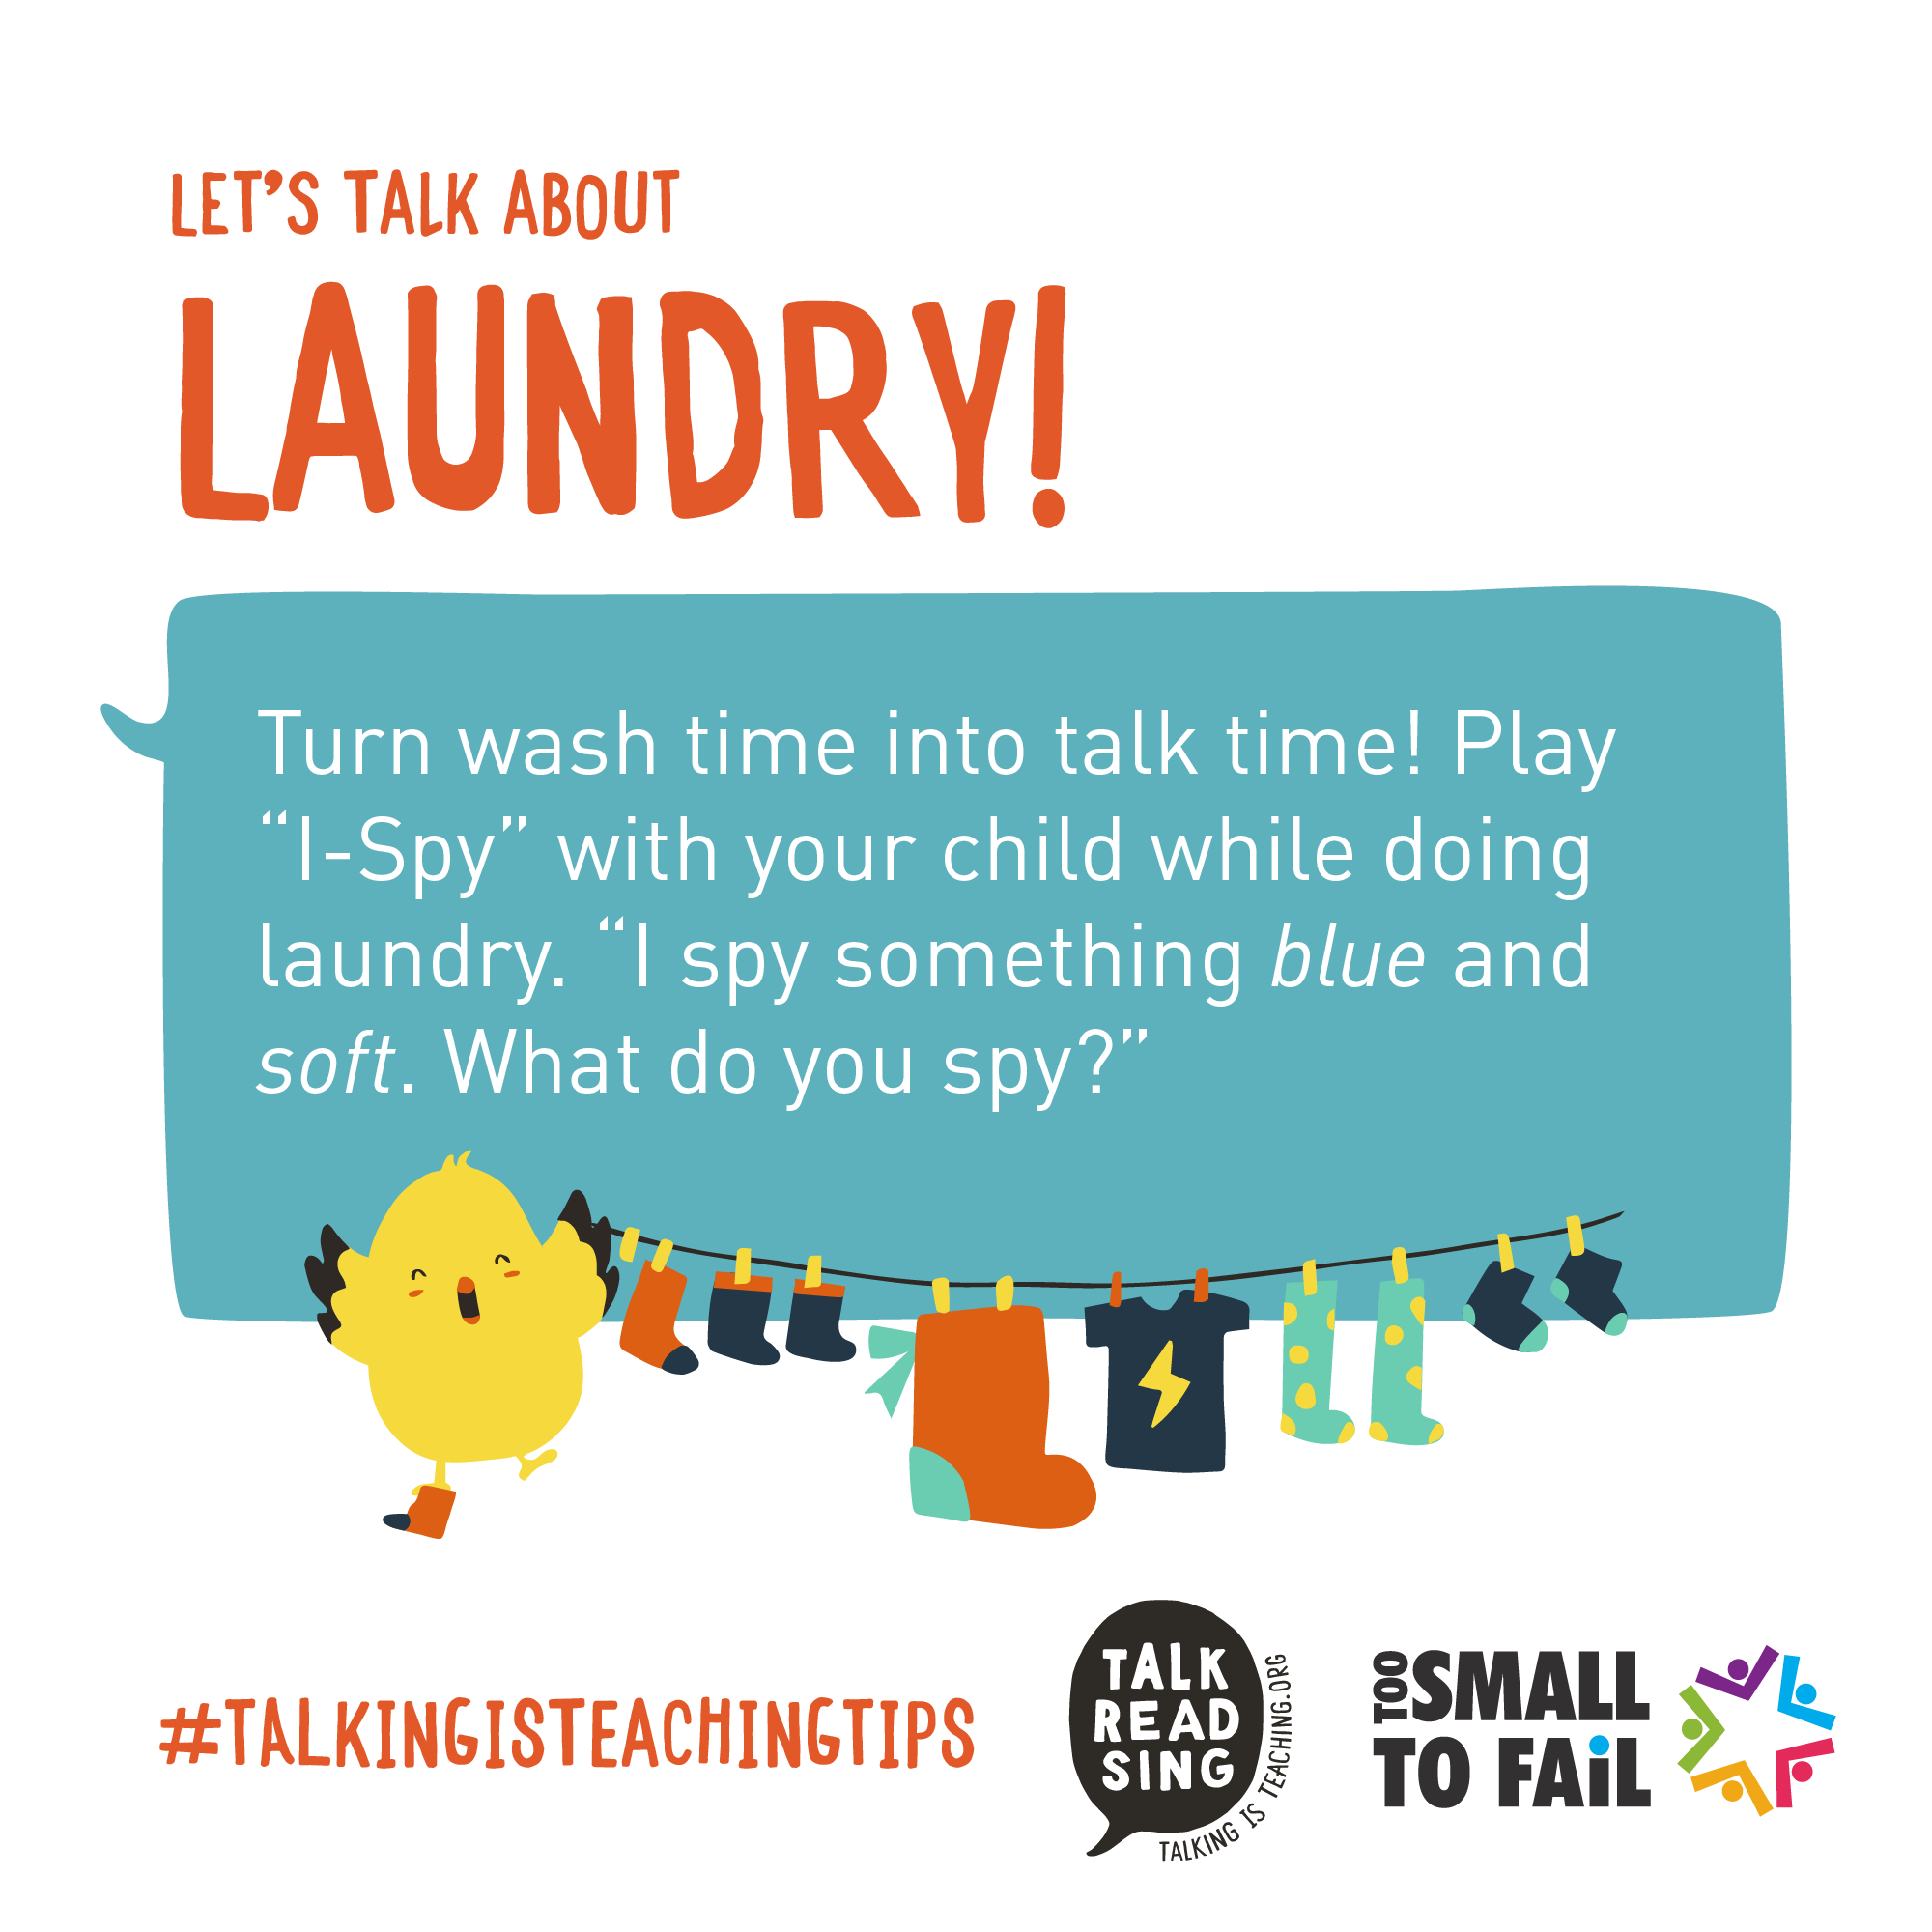 """Tip 3: Turn wash time into talk time! Talk about what you see with your little one while you're doing laundry by playing """"I-Spy""""! #TalkingIsTeachingTips"""